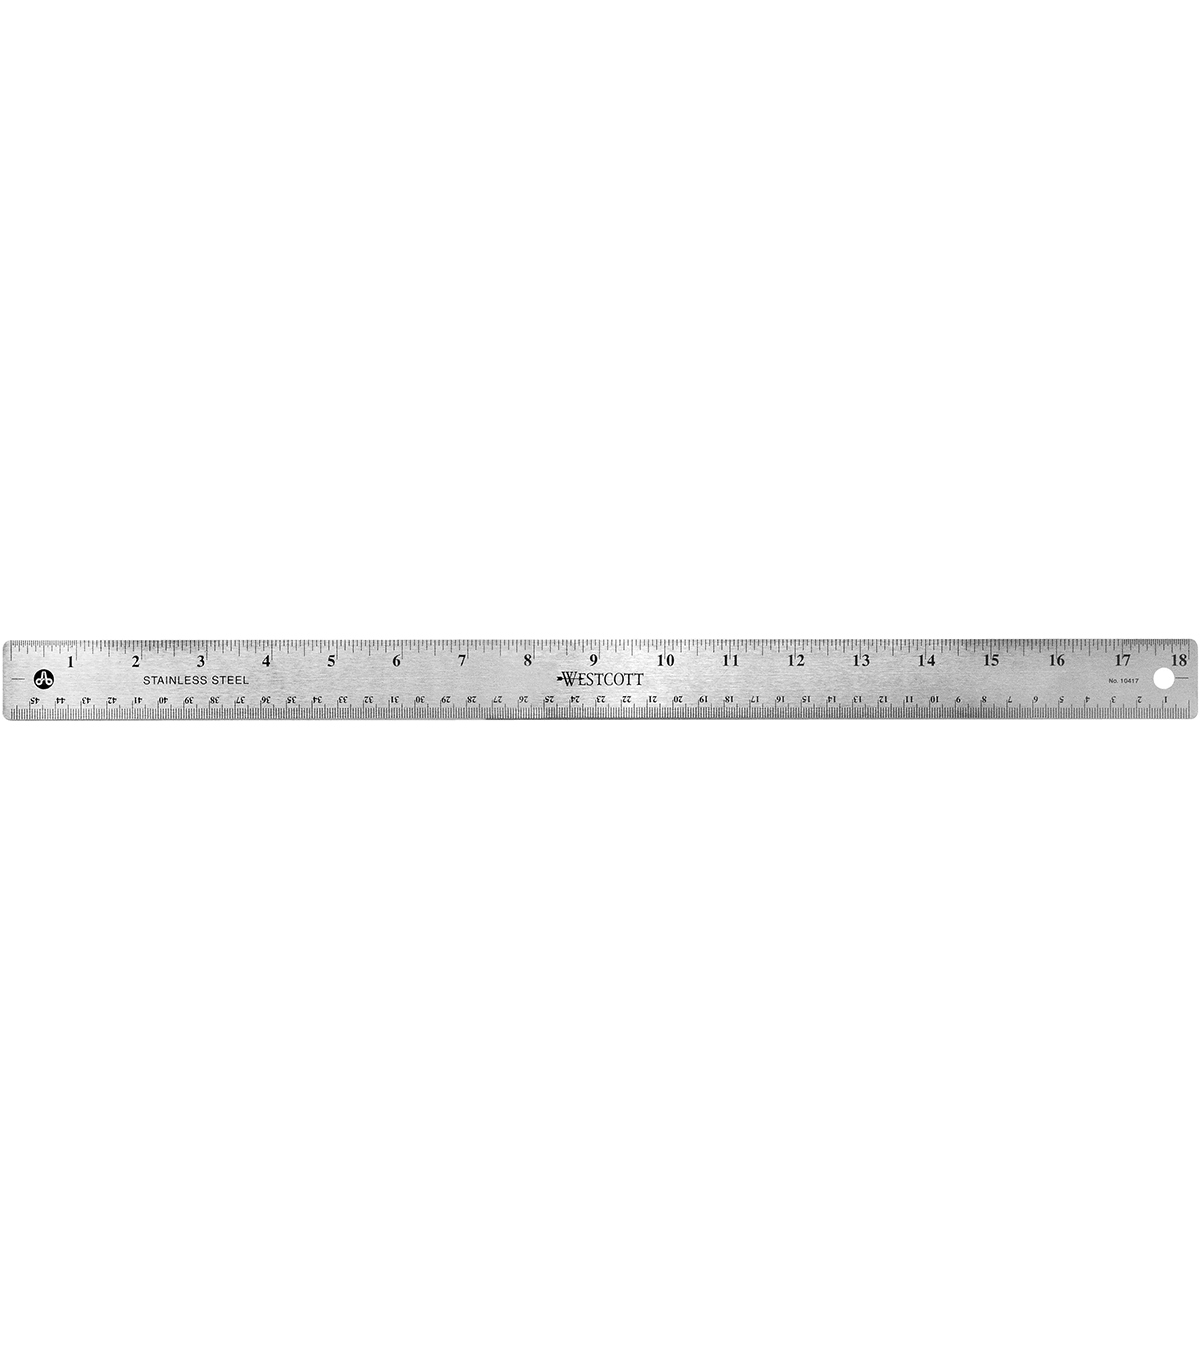 Acme Stainless Steel English Metric Ruler